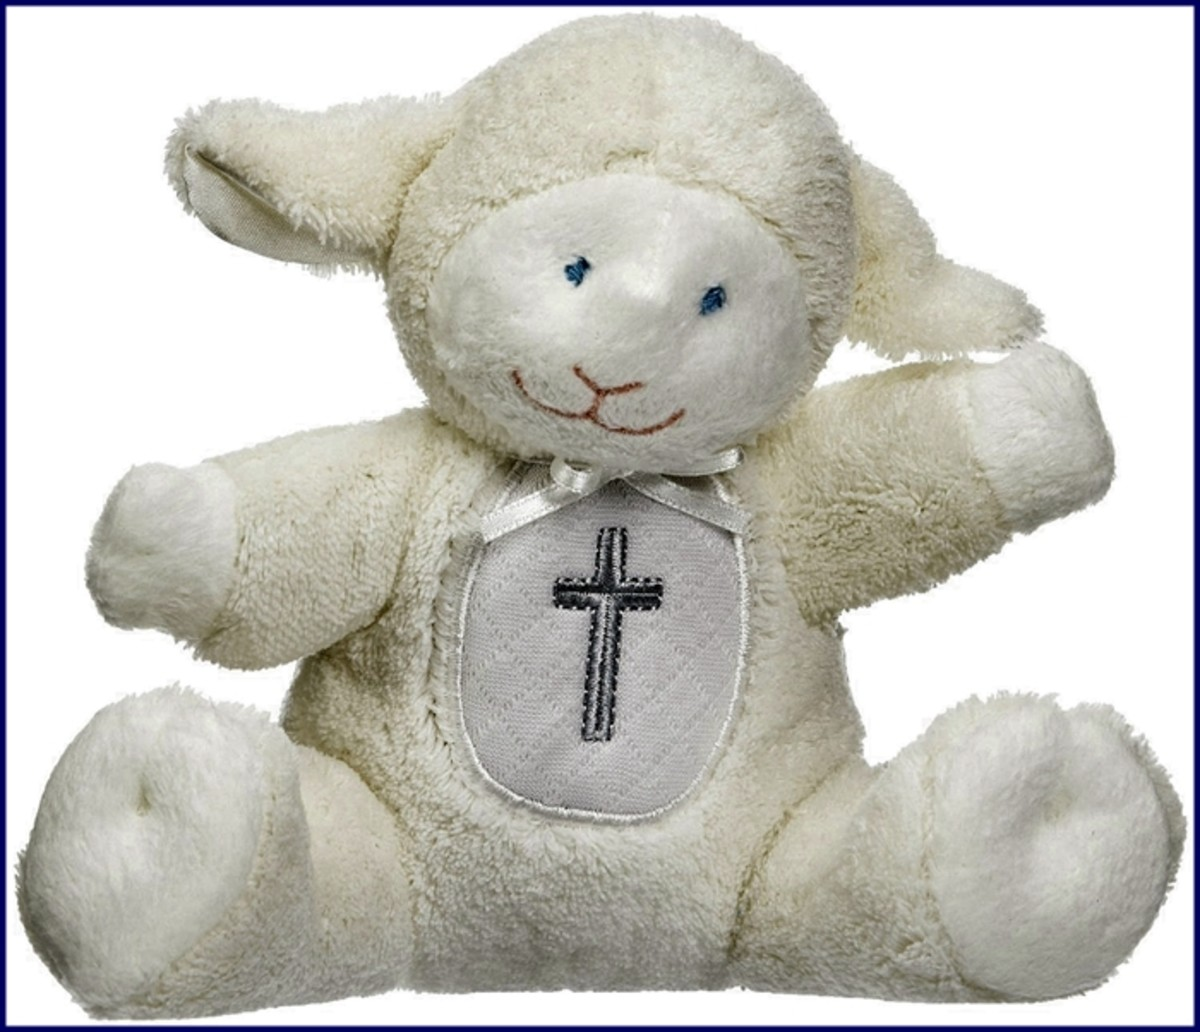 This adorable little lamb from Mary Meyer is so cuddly!